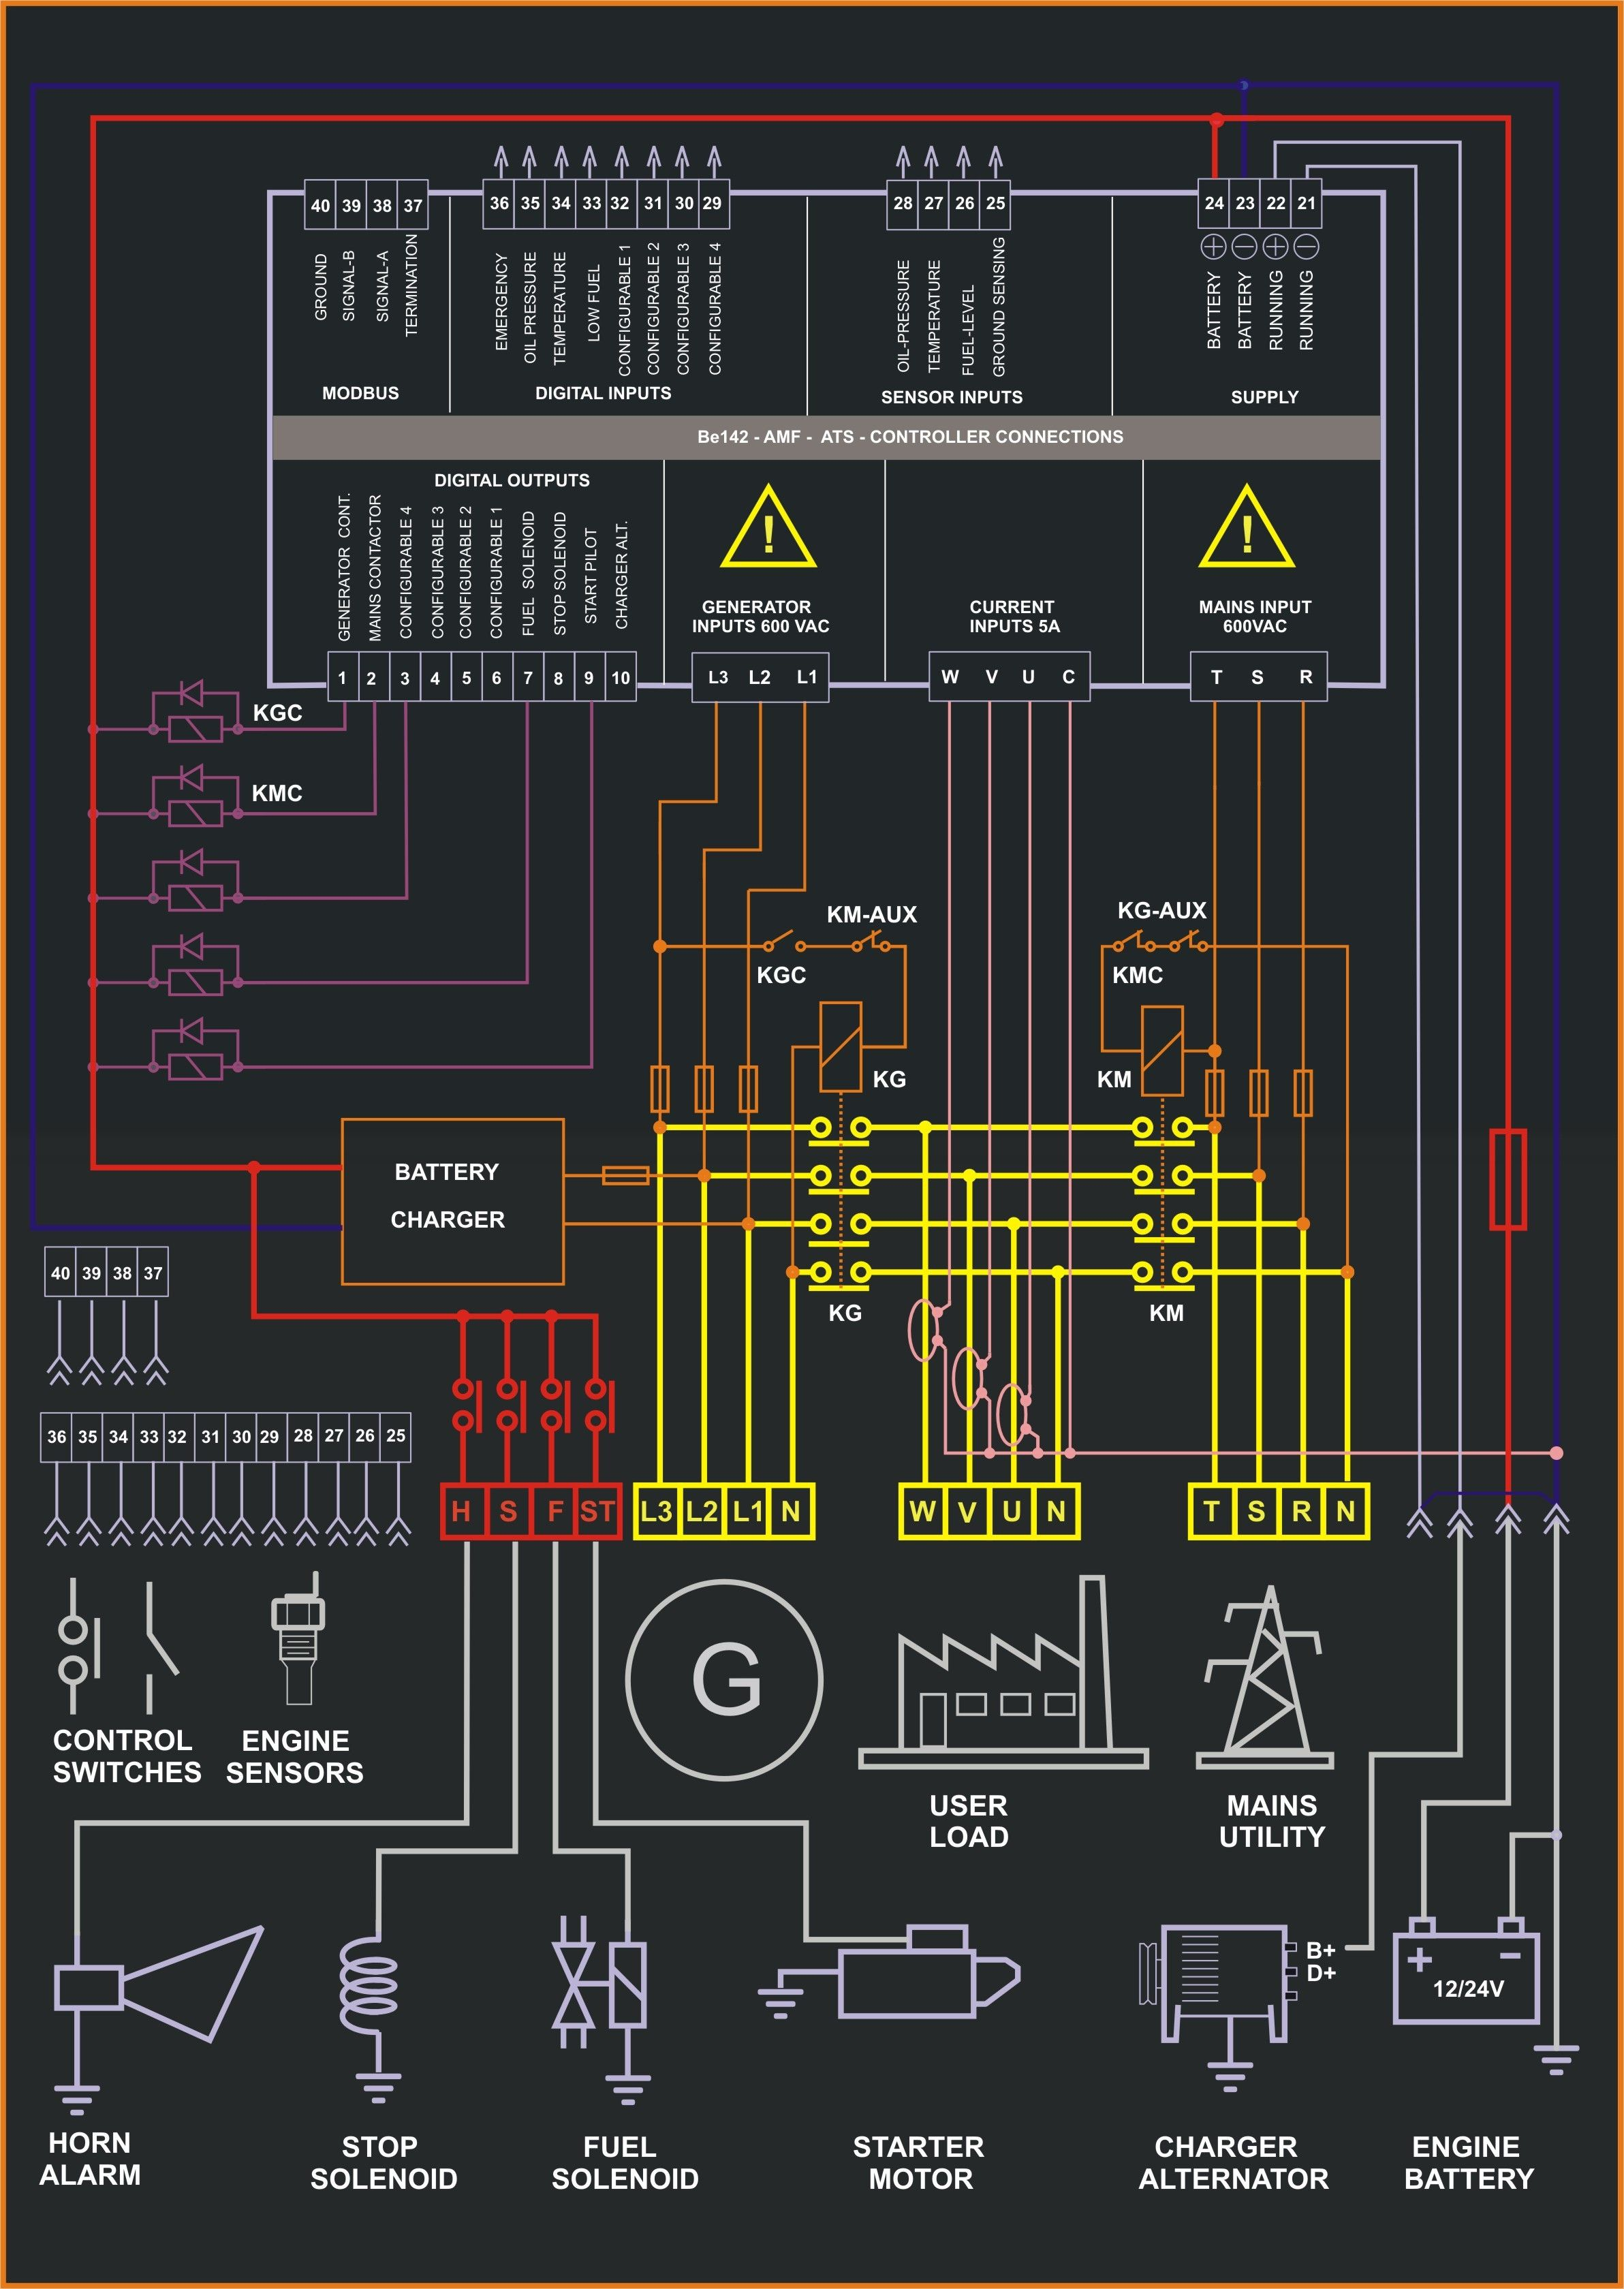 Electrical Panel Board Wiring Diagram Pdf Fresh 41 Awesome Circuit Breaker Theory Pdf Electrical Circuit Diagram Electrical Panel Wiring Circuit Diagram